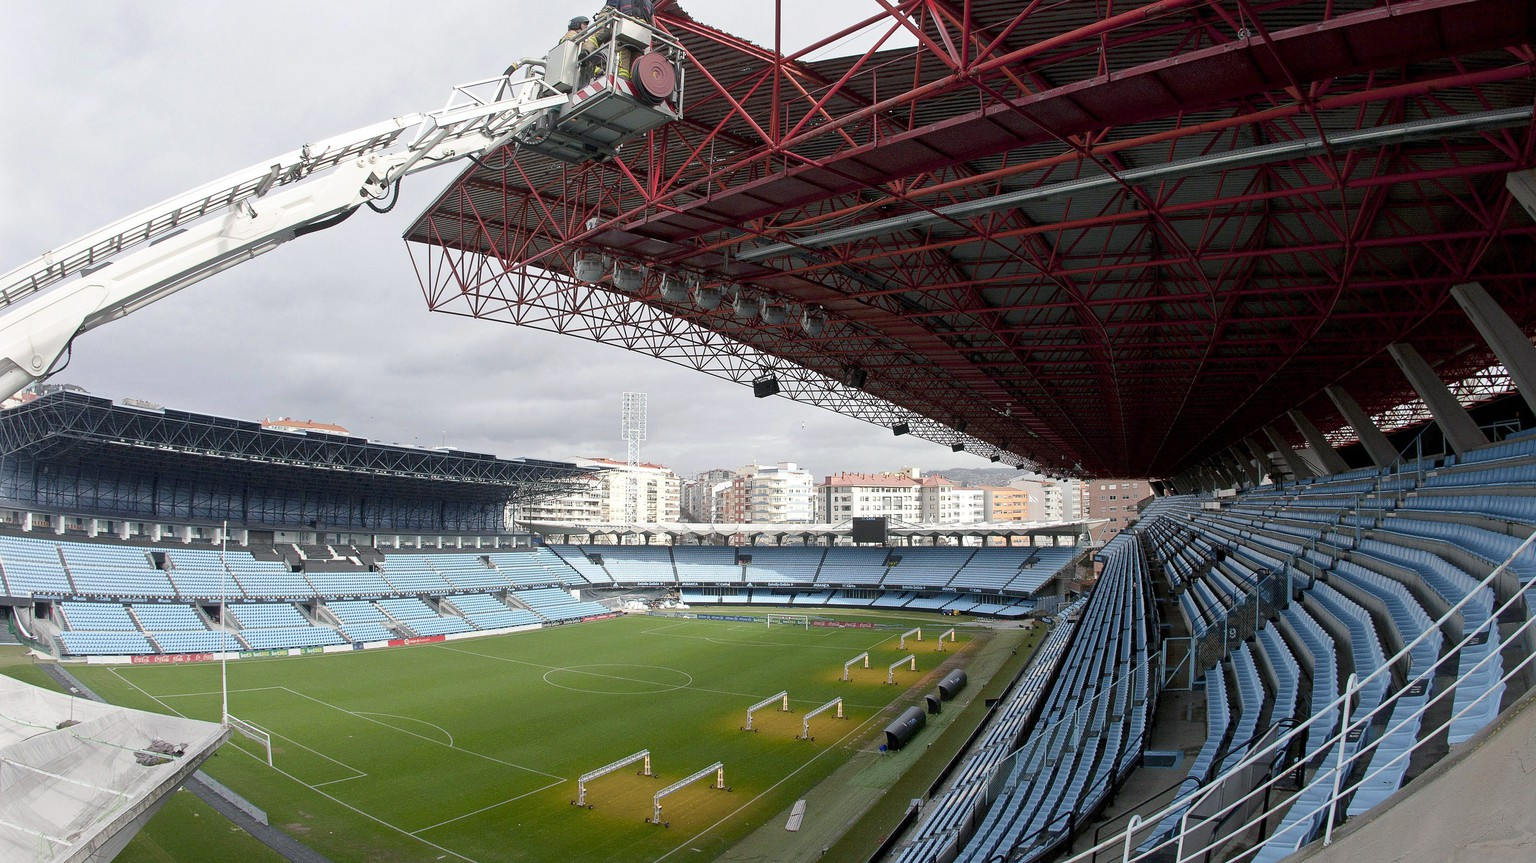 epa05775080 Firefighters work on the damaged roof of the Balaidos stadium in Vigo, northwestern Spain, 06 February 2017, after the Spanish Primera Division soccer match between Celta Vigo and Real Madrid on 05 February 2017 has been suspended due to damages caused by strong winds. At least five people were injured due to heavy rainfall and strong winds hitting northern Spain.  EPA/SALVADOR SAS